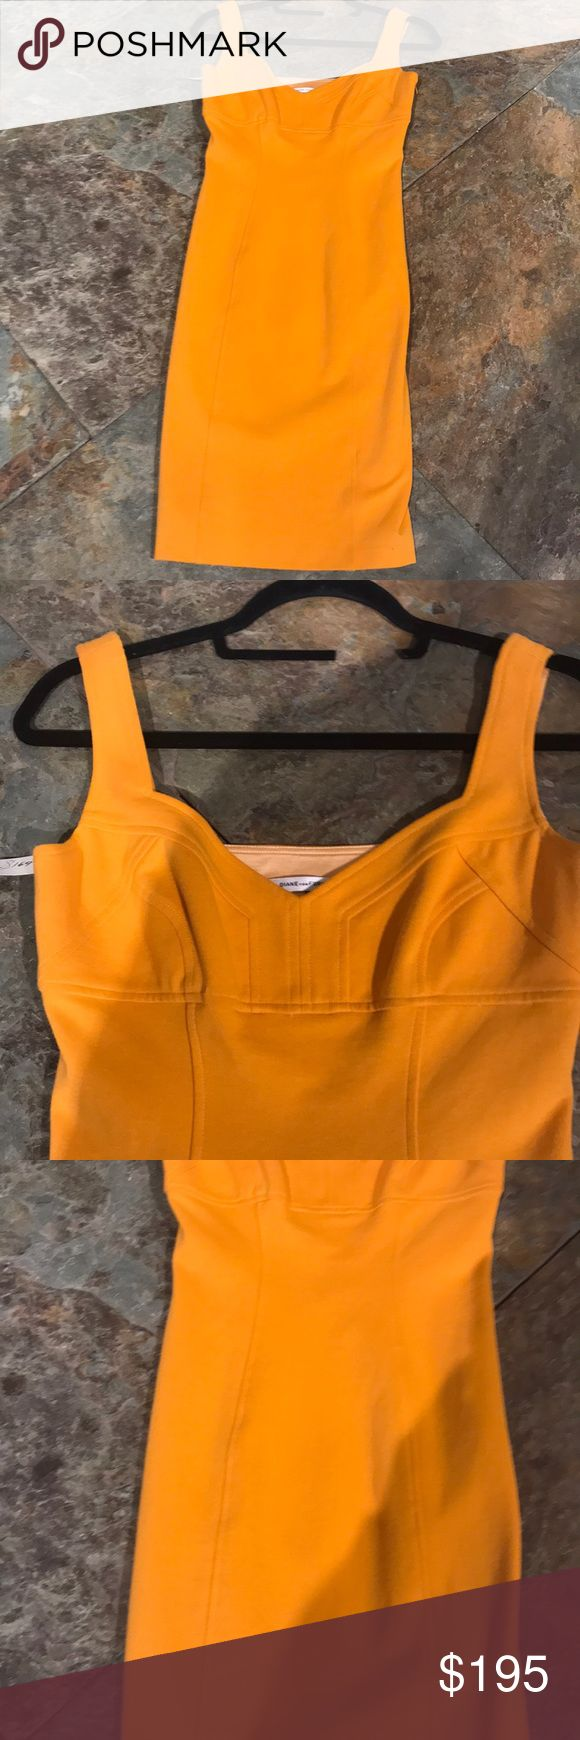 NWT DIANE VON FURSTENBERG TANGERINE 🍊 DRESS THIS FORM FITTING DRESS IS SO SENSATIONAL! Wish it fit me ! Fantastic detail at top with a hidden zipper in back . This dress makes people go WOW !! Diane Von Furstenberg Dresses Midi